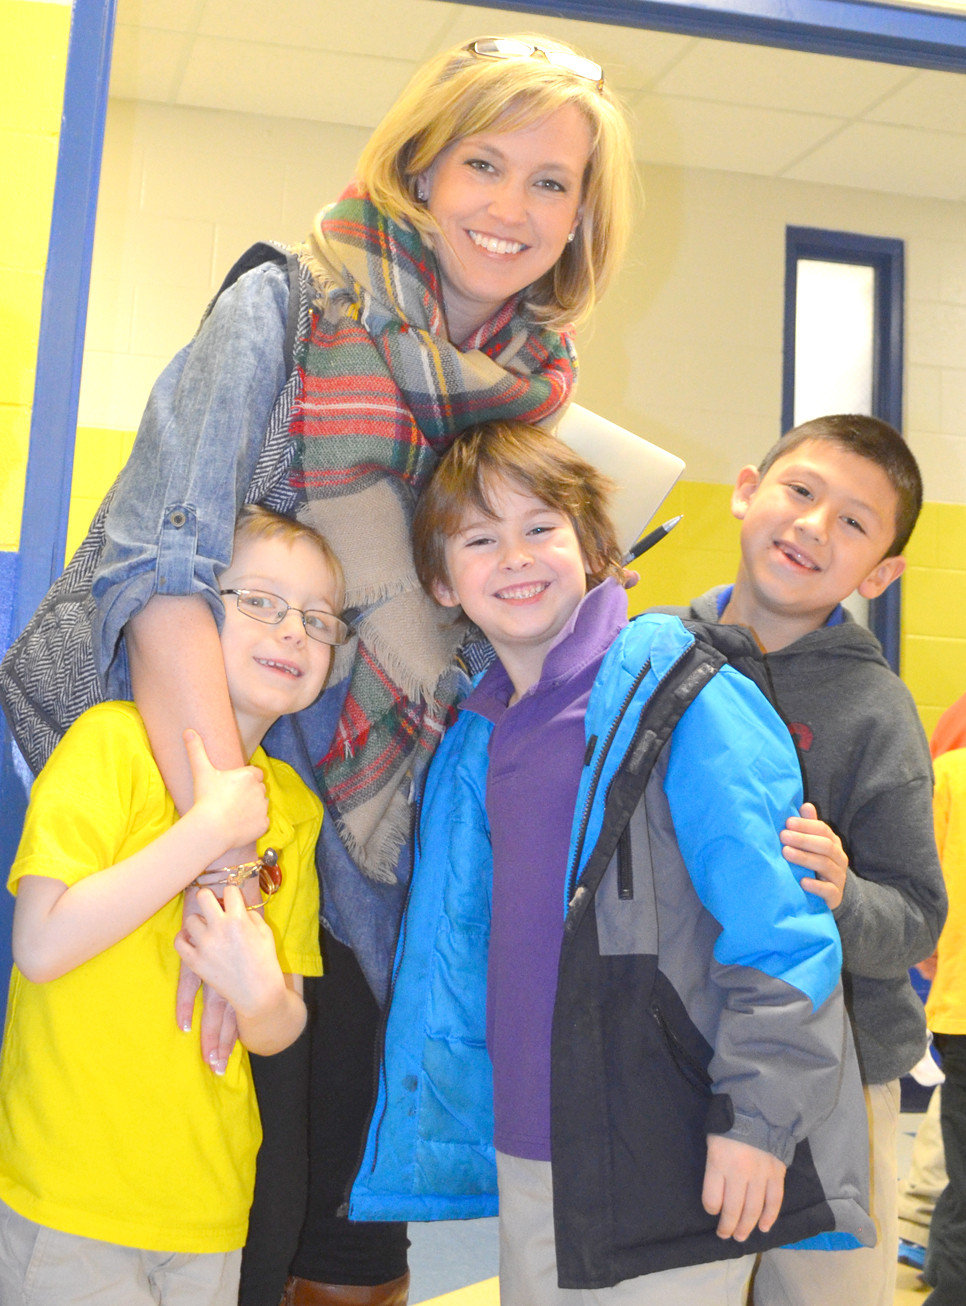 MARTHA COLLINS, director of student achievement for Woodford County Public Schools, was stopped in the hallway for a group hug by Simmons Elementary students Jacob Durst, Parker Combs and Juan Marroquin, who are pictured left to right. (Photo by Bob Vlach)